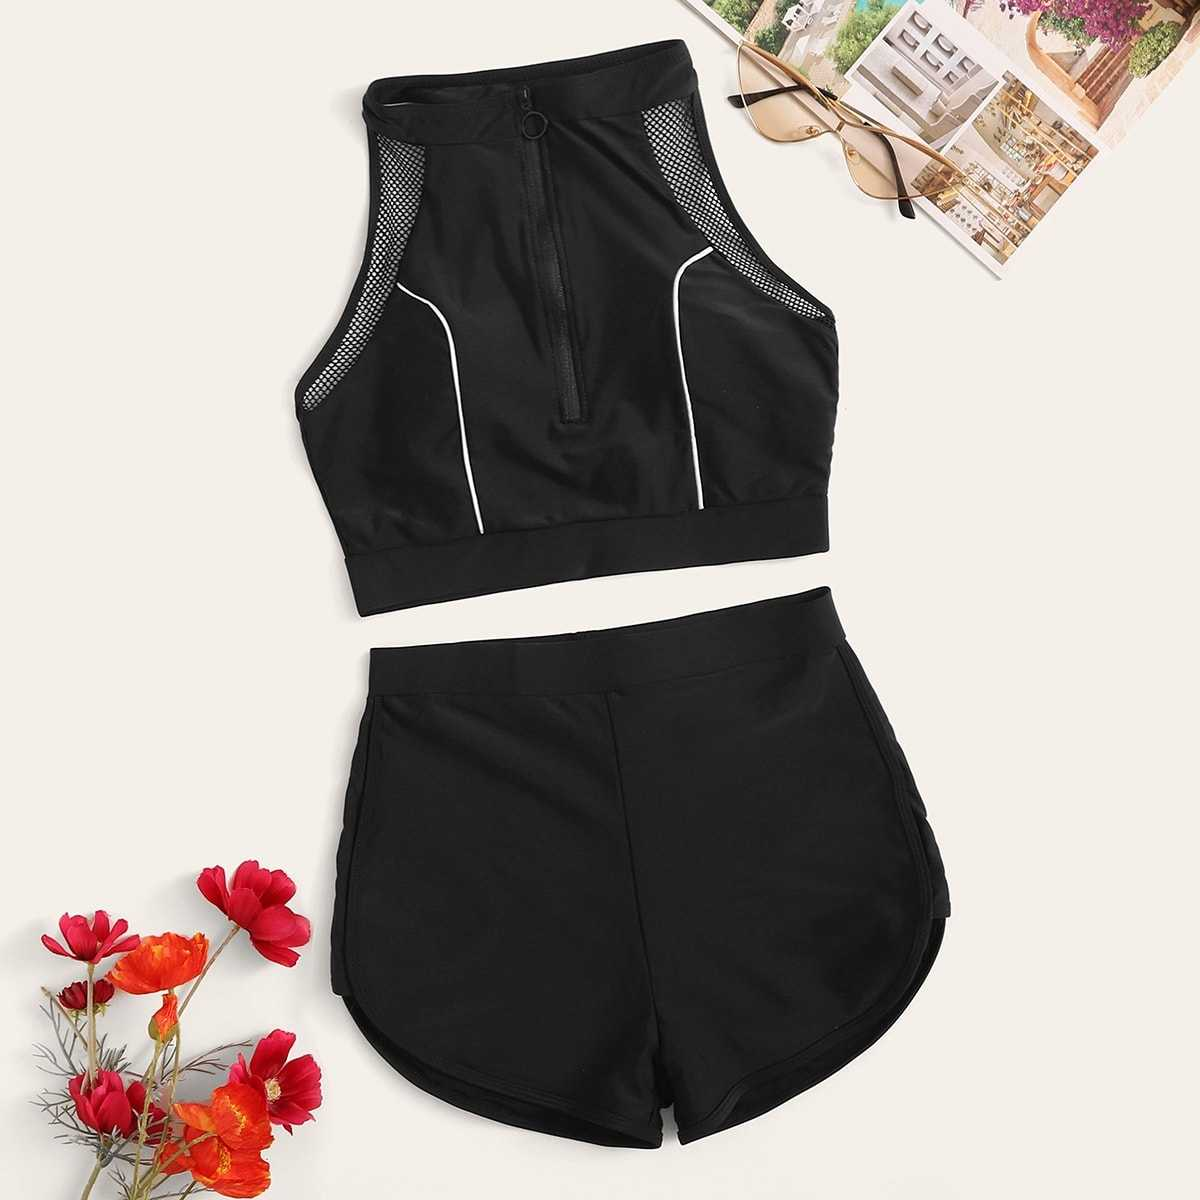 Zipper-up Racerback Top With Shorts 2 Piece Swimsuit in Black by ROMWE on GOOFASH